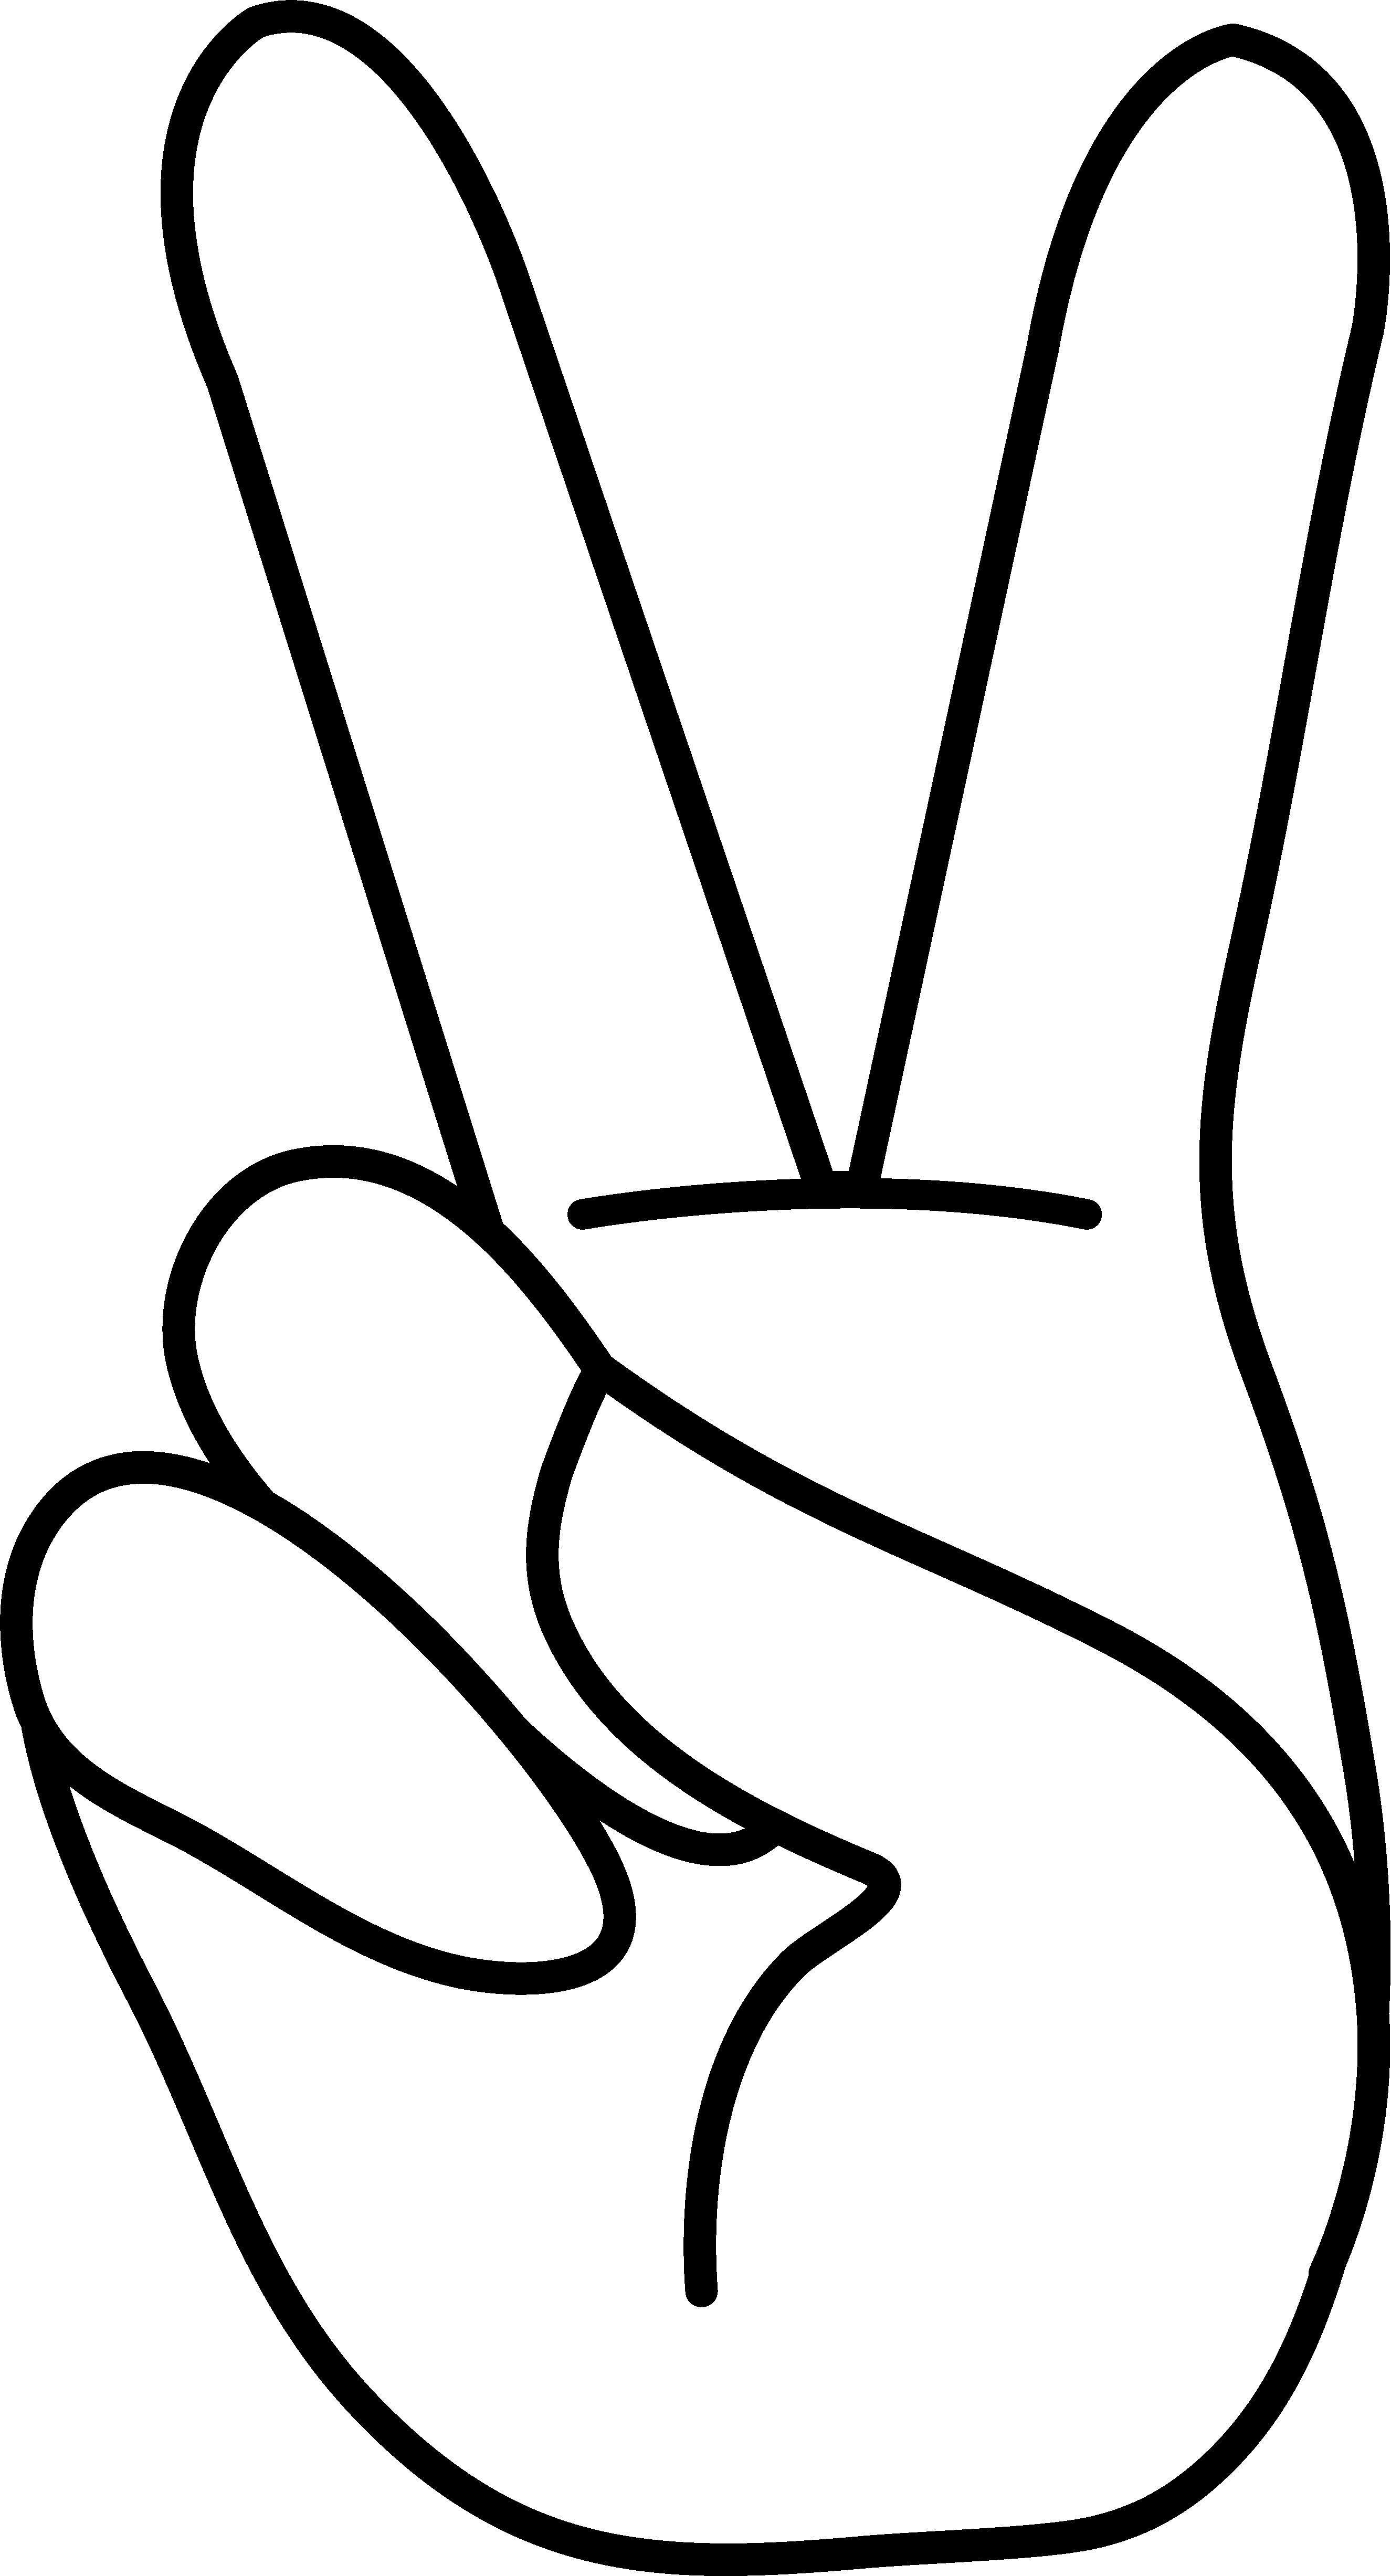 Peace clipart hand signal. Free cartoon sign download